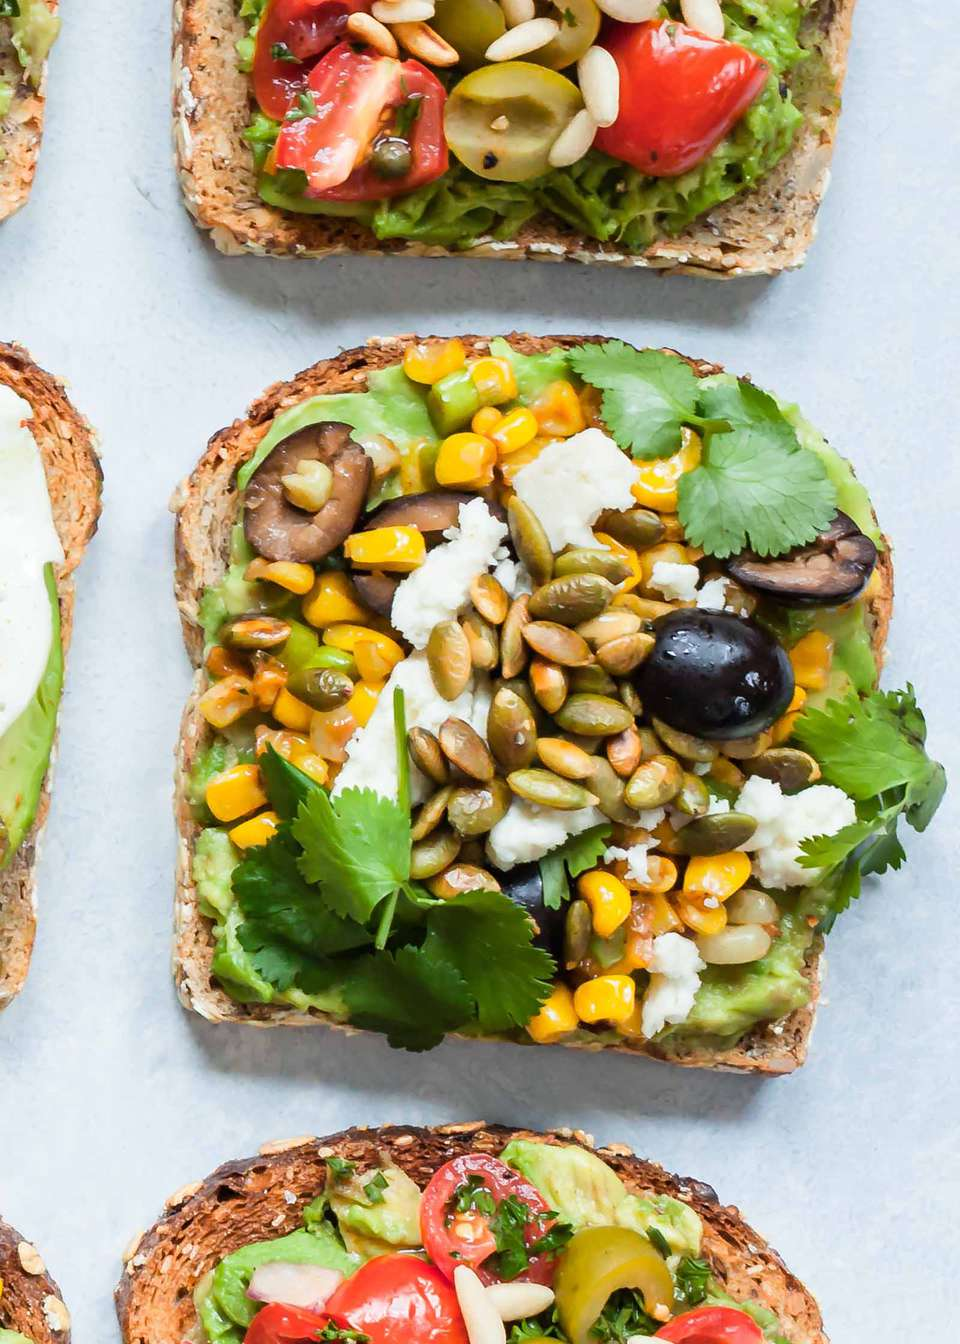 Avocado Toast with Olives, Corn, and Pepitas